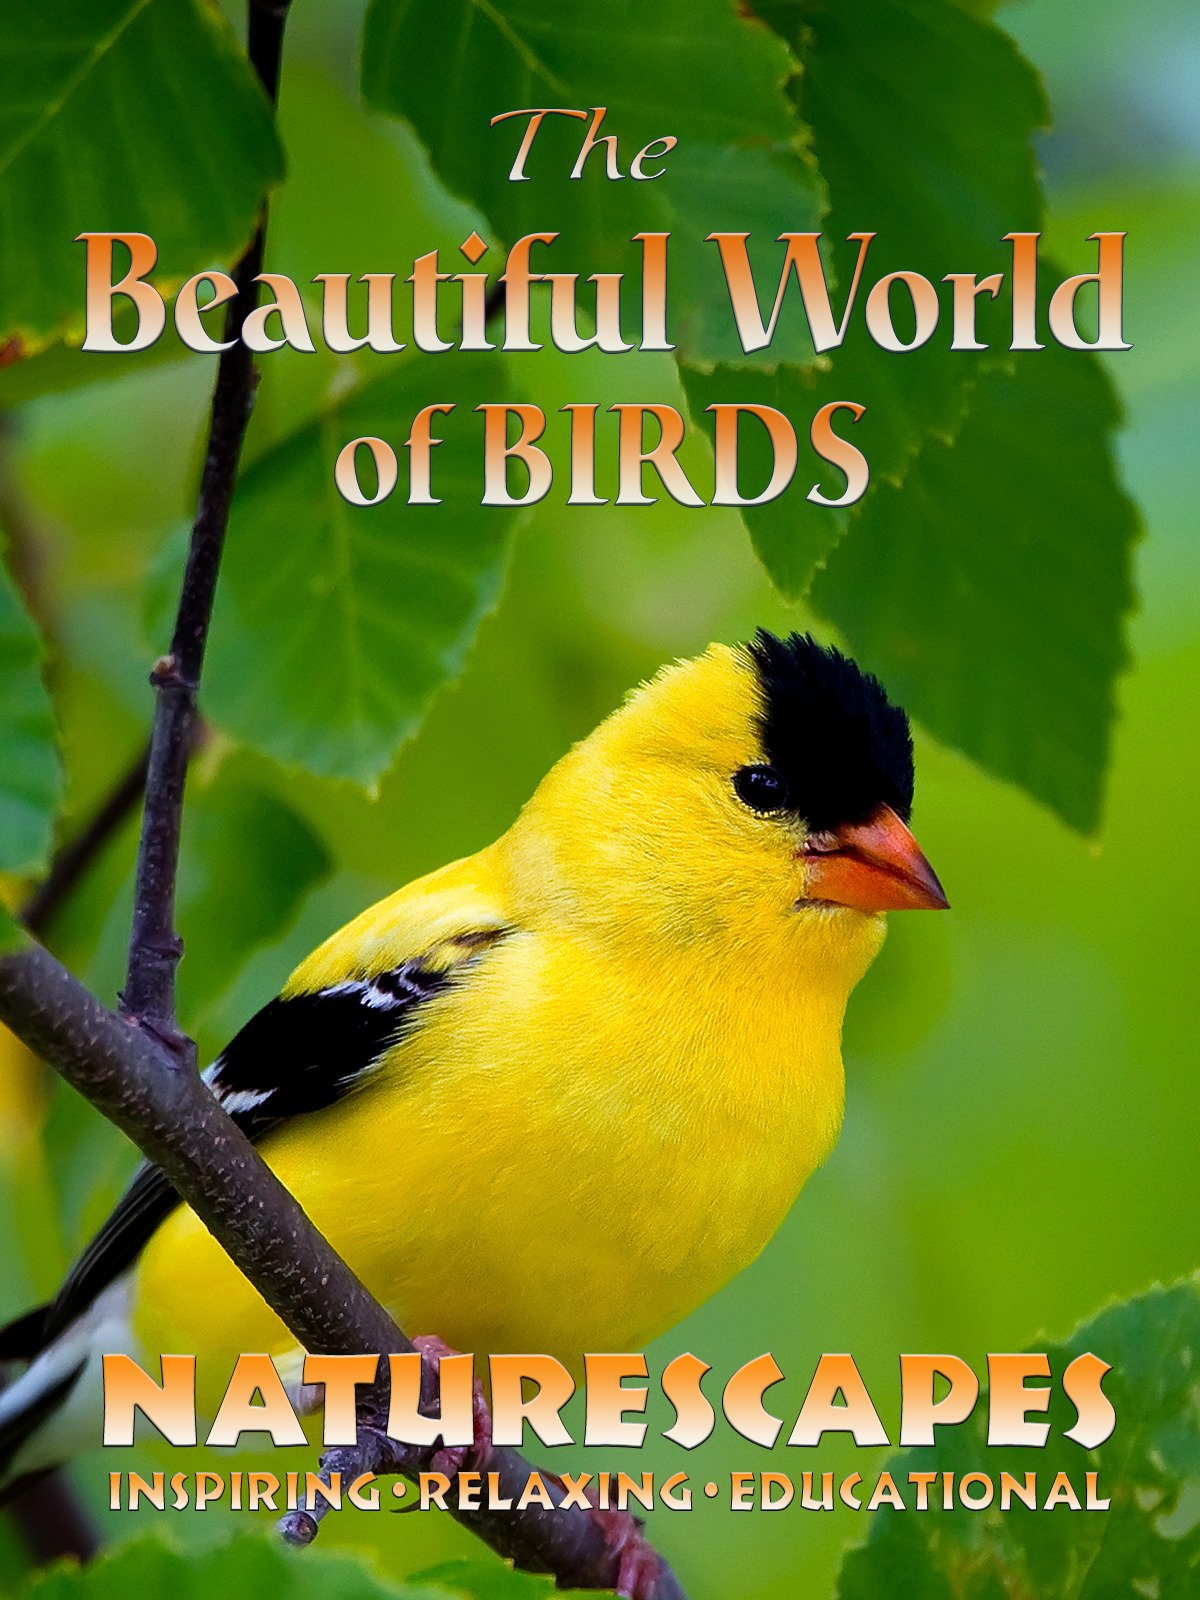 The Beautiful World of Birds